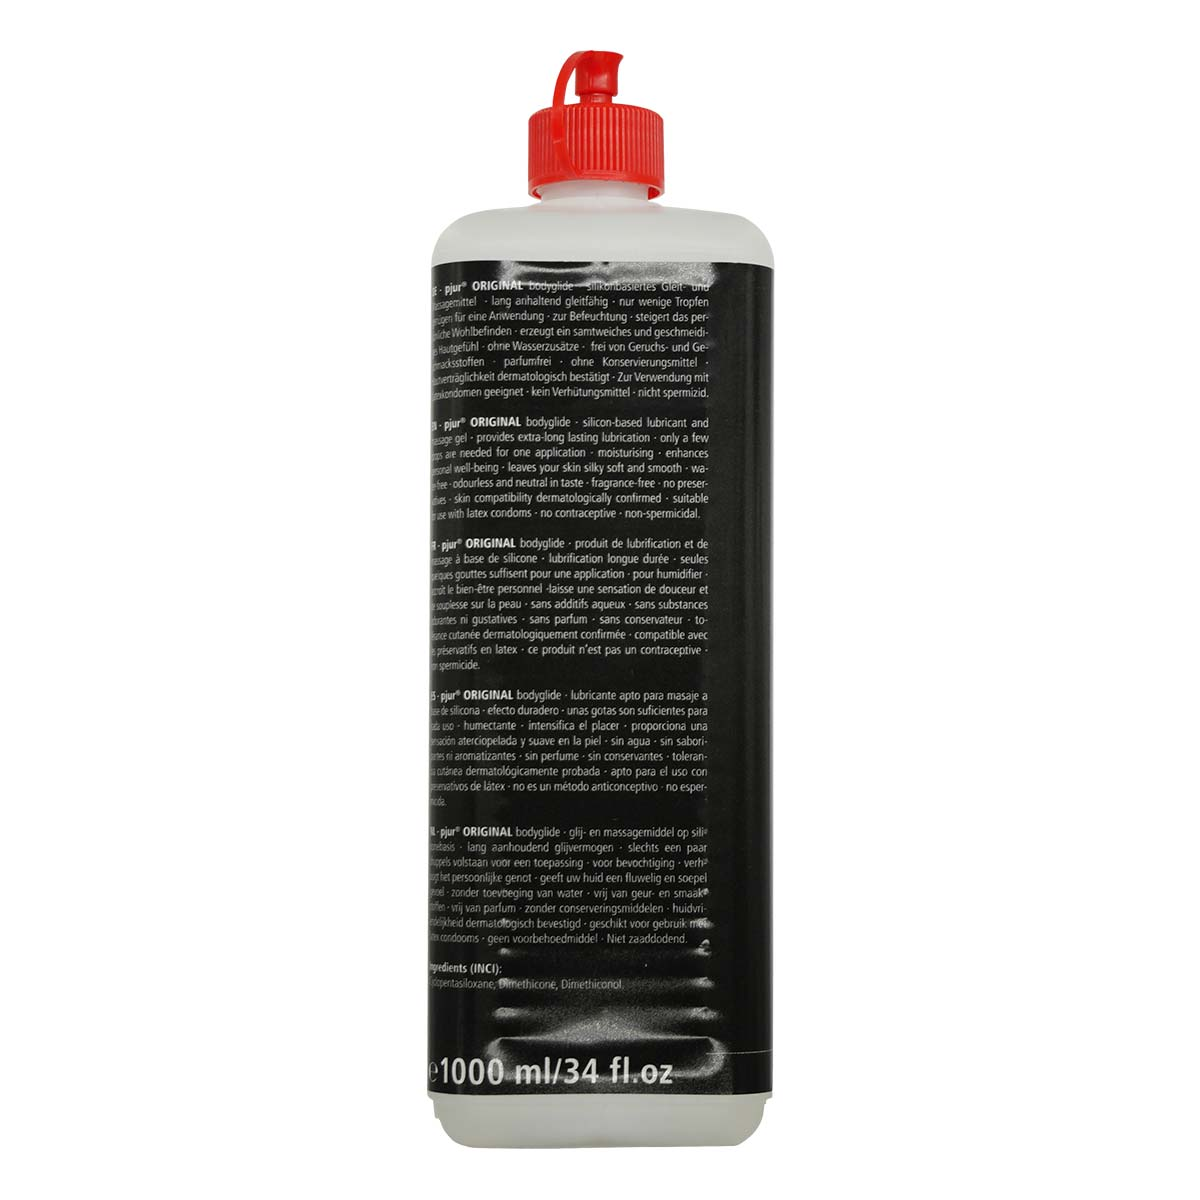 pjur ORIGINAL 1000ml Silicone-based Lubricant